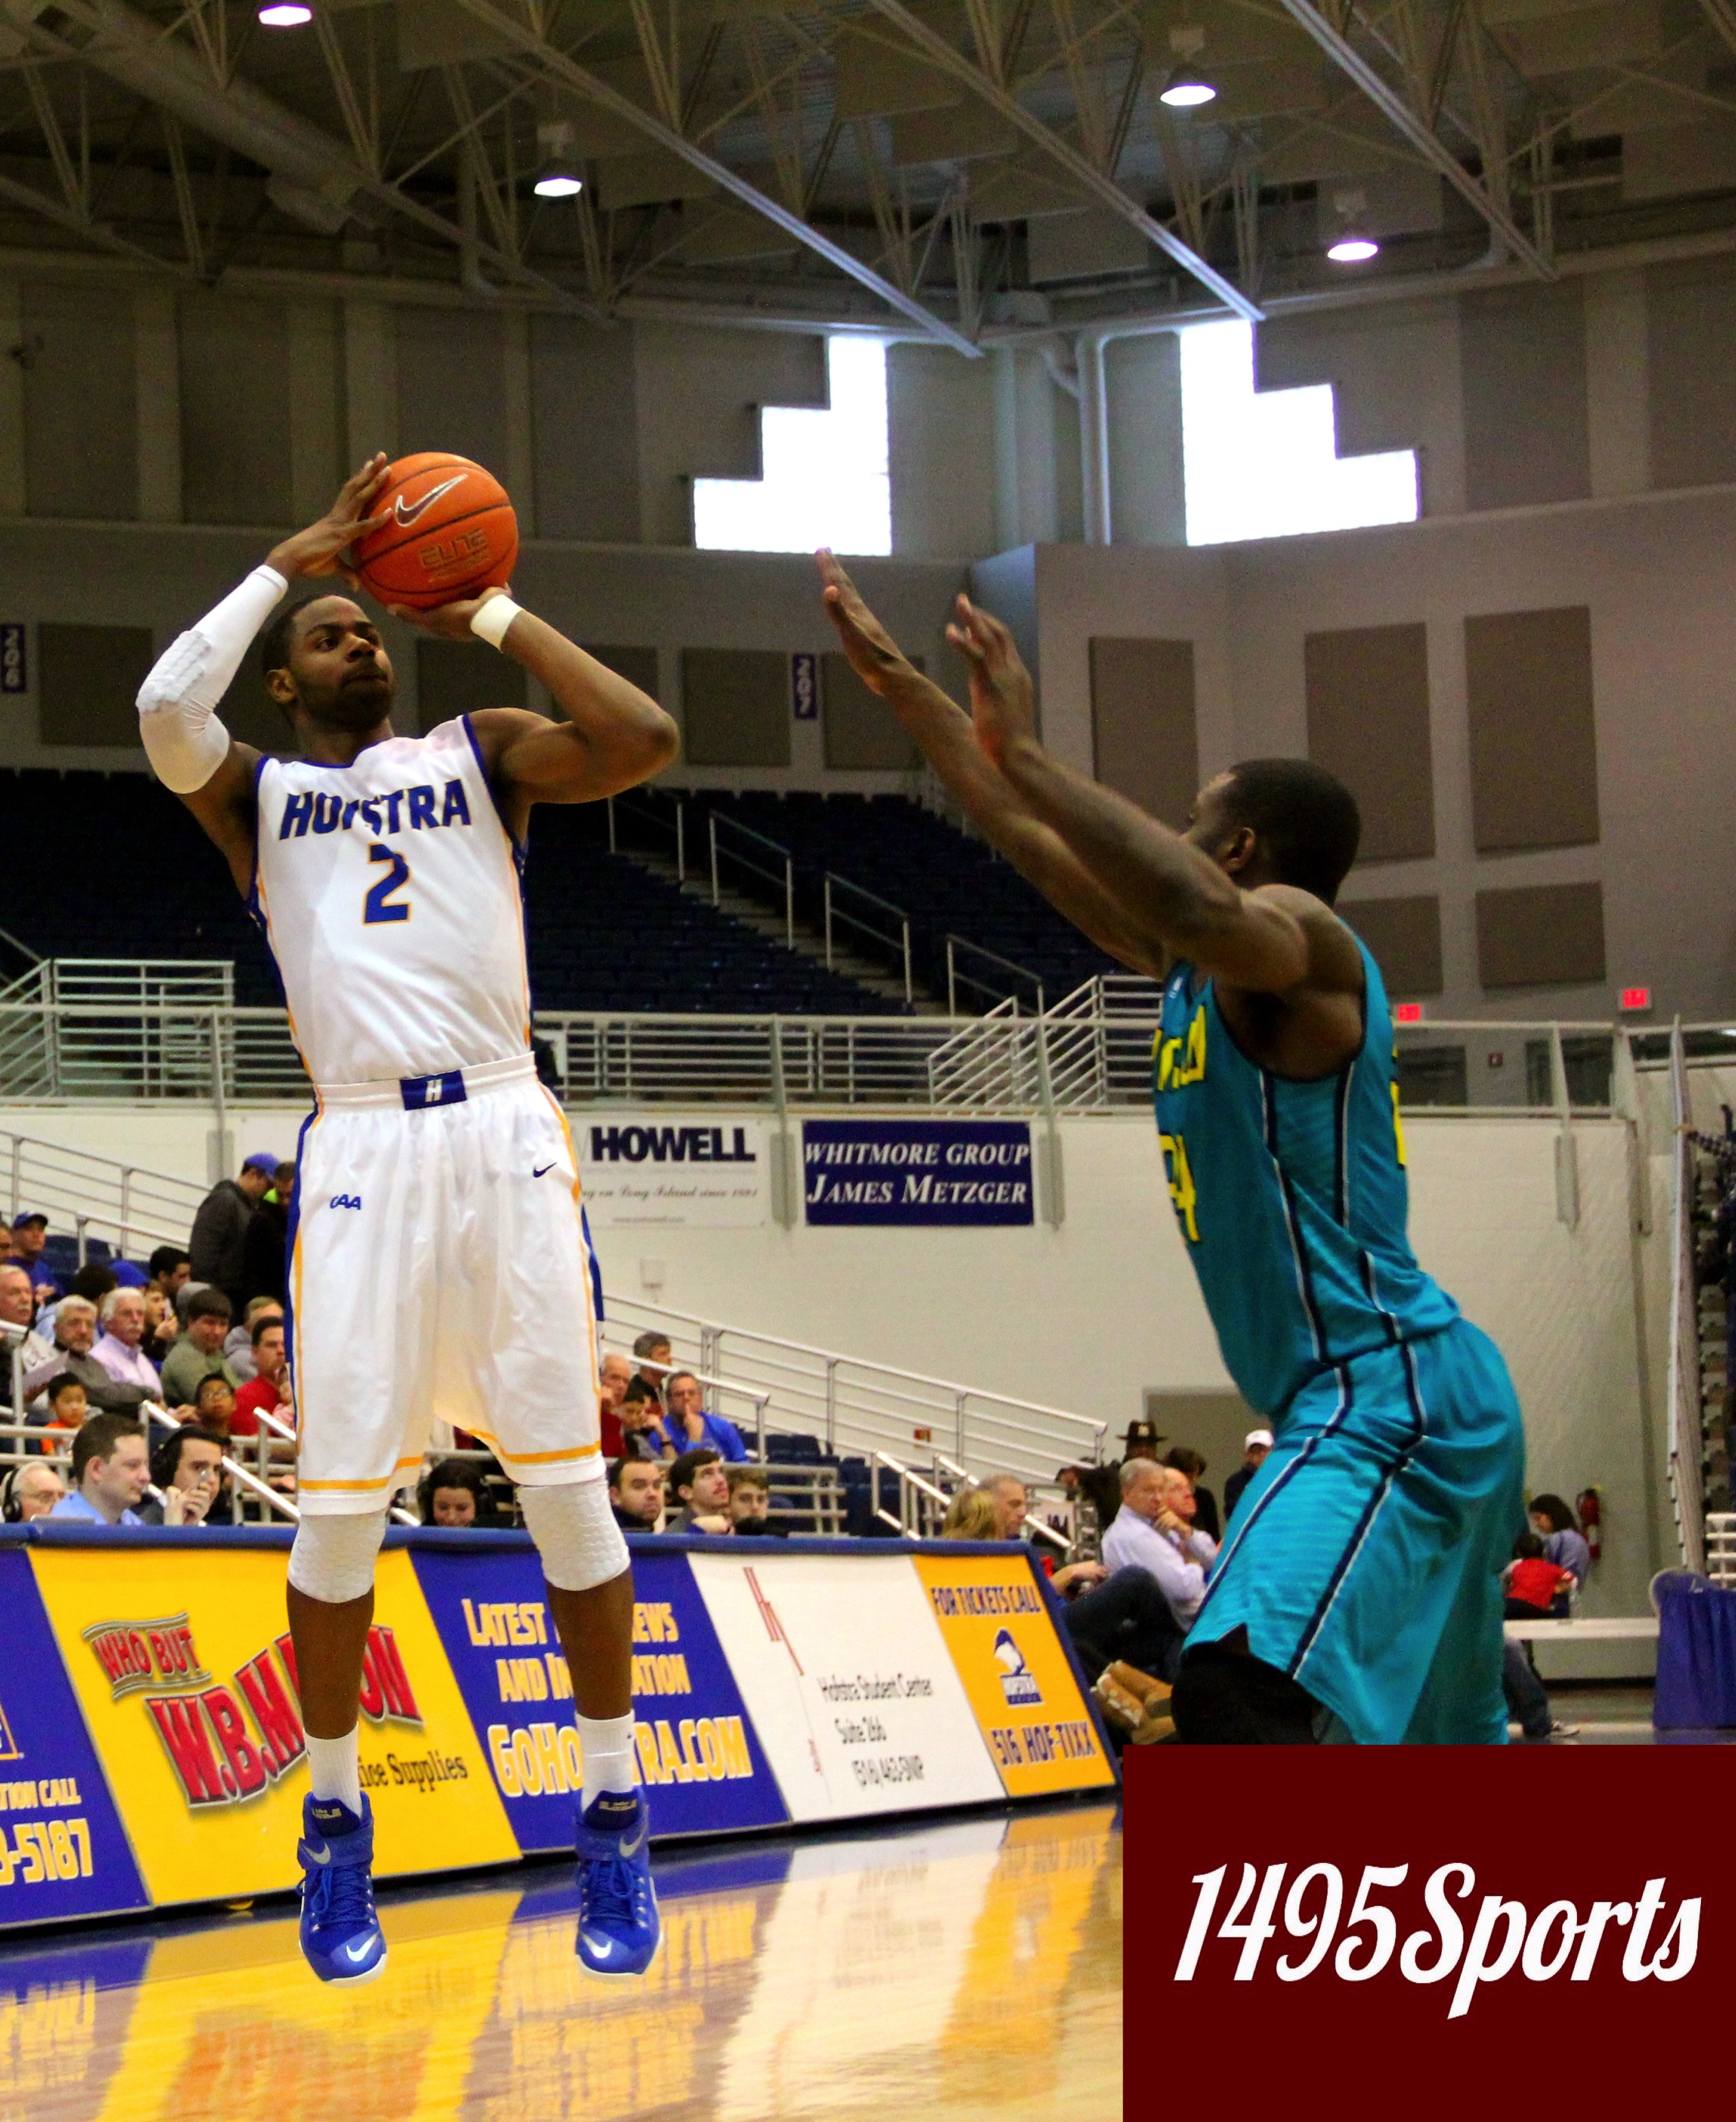 Hofstra Mbb To Host Vermont In First Round Of College Basketball